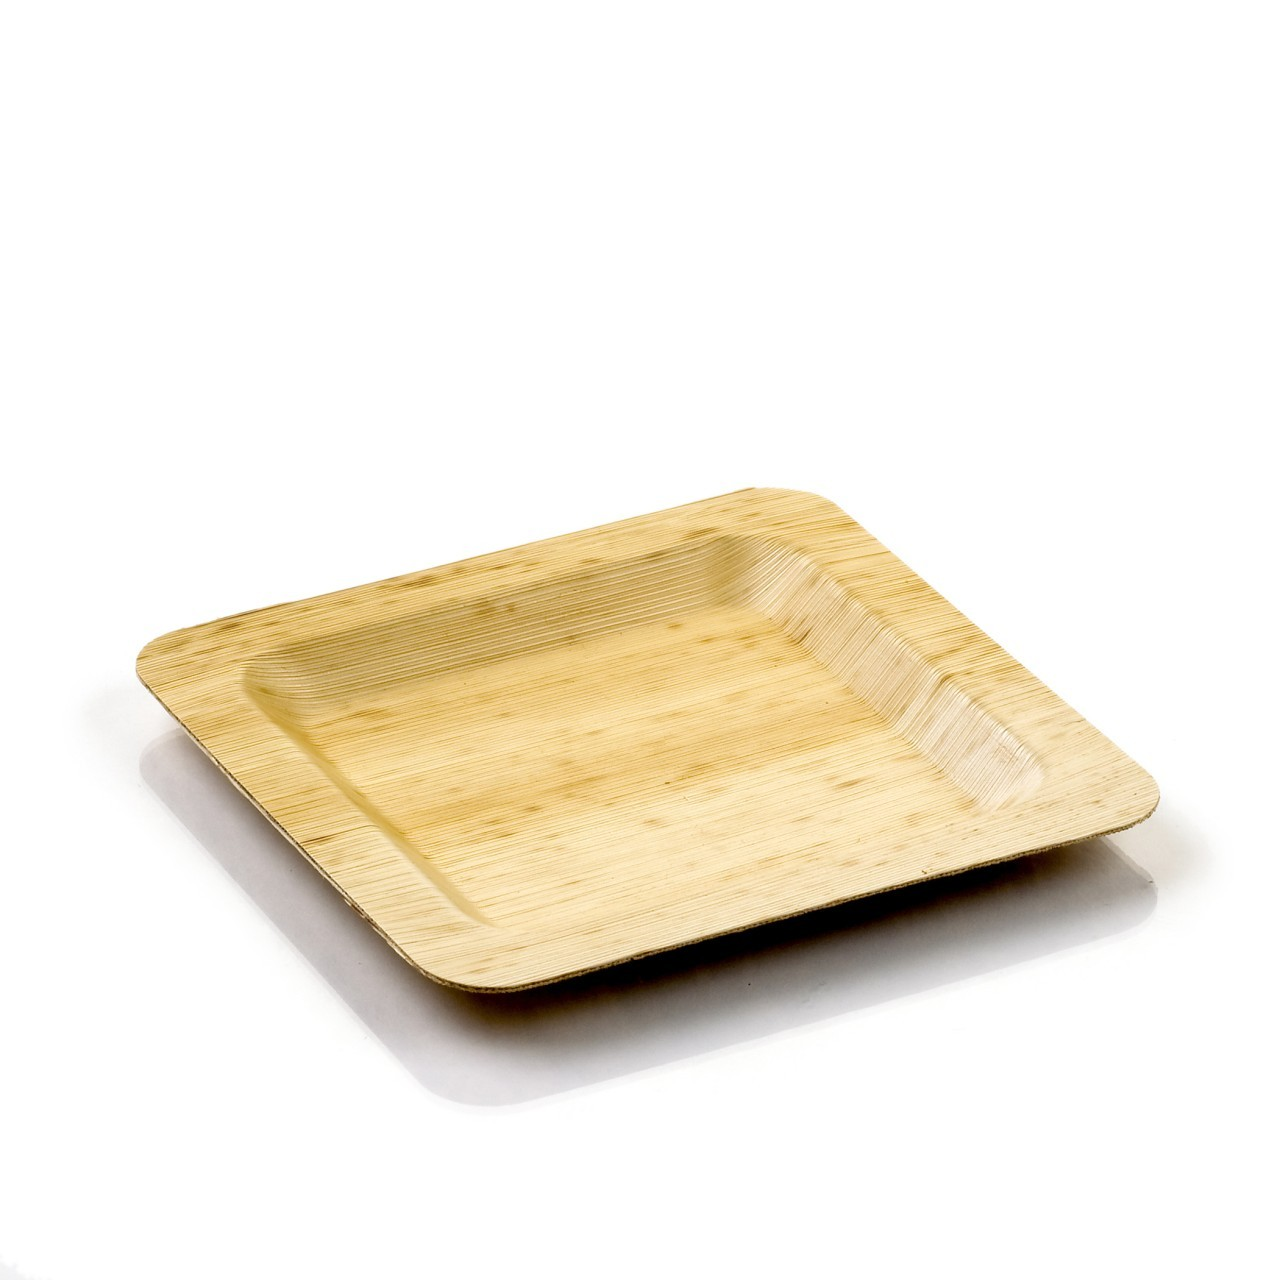 Astonishing bamboo plates with Core bamboo plates for serveware ideas